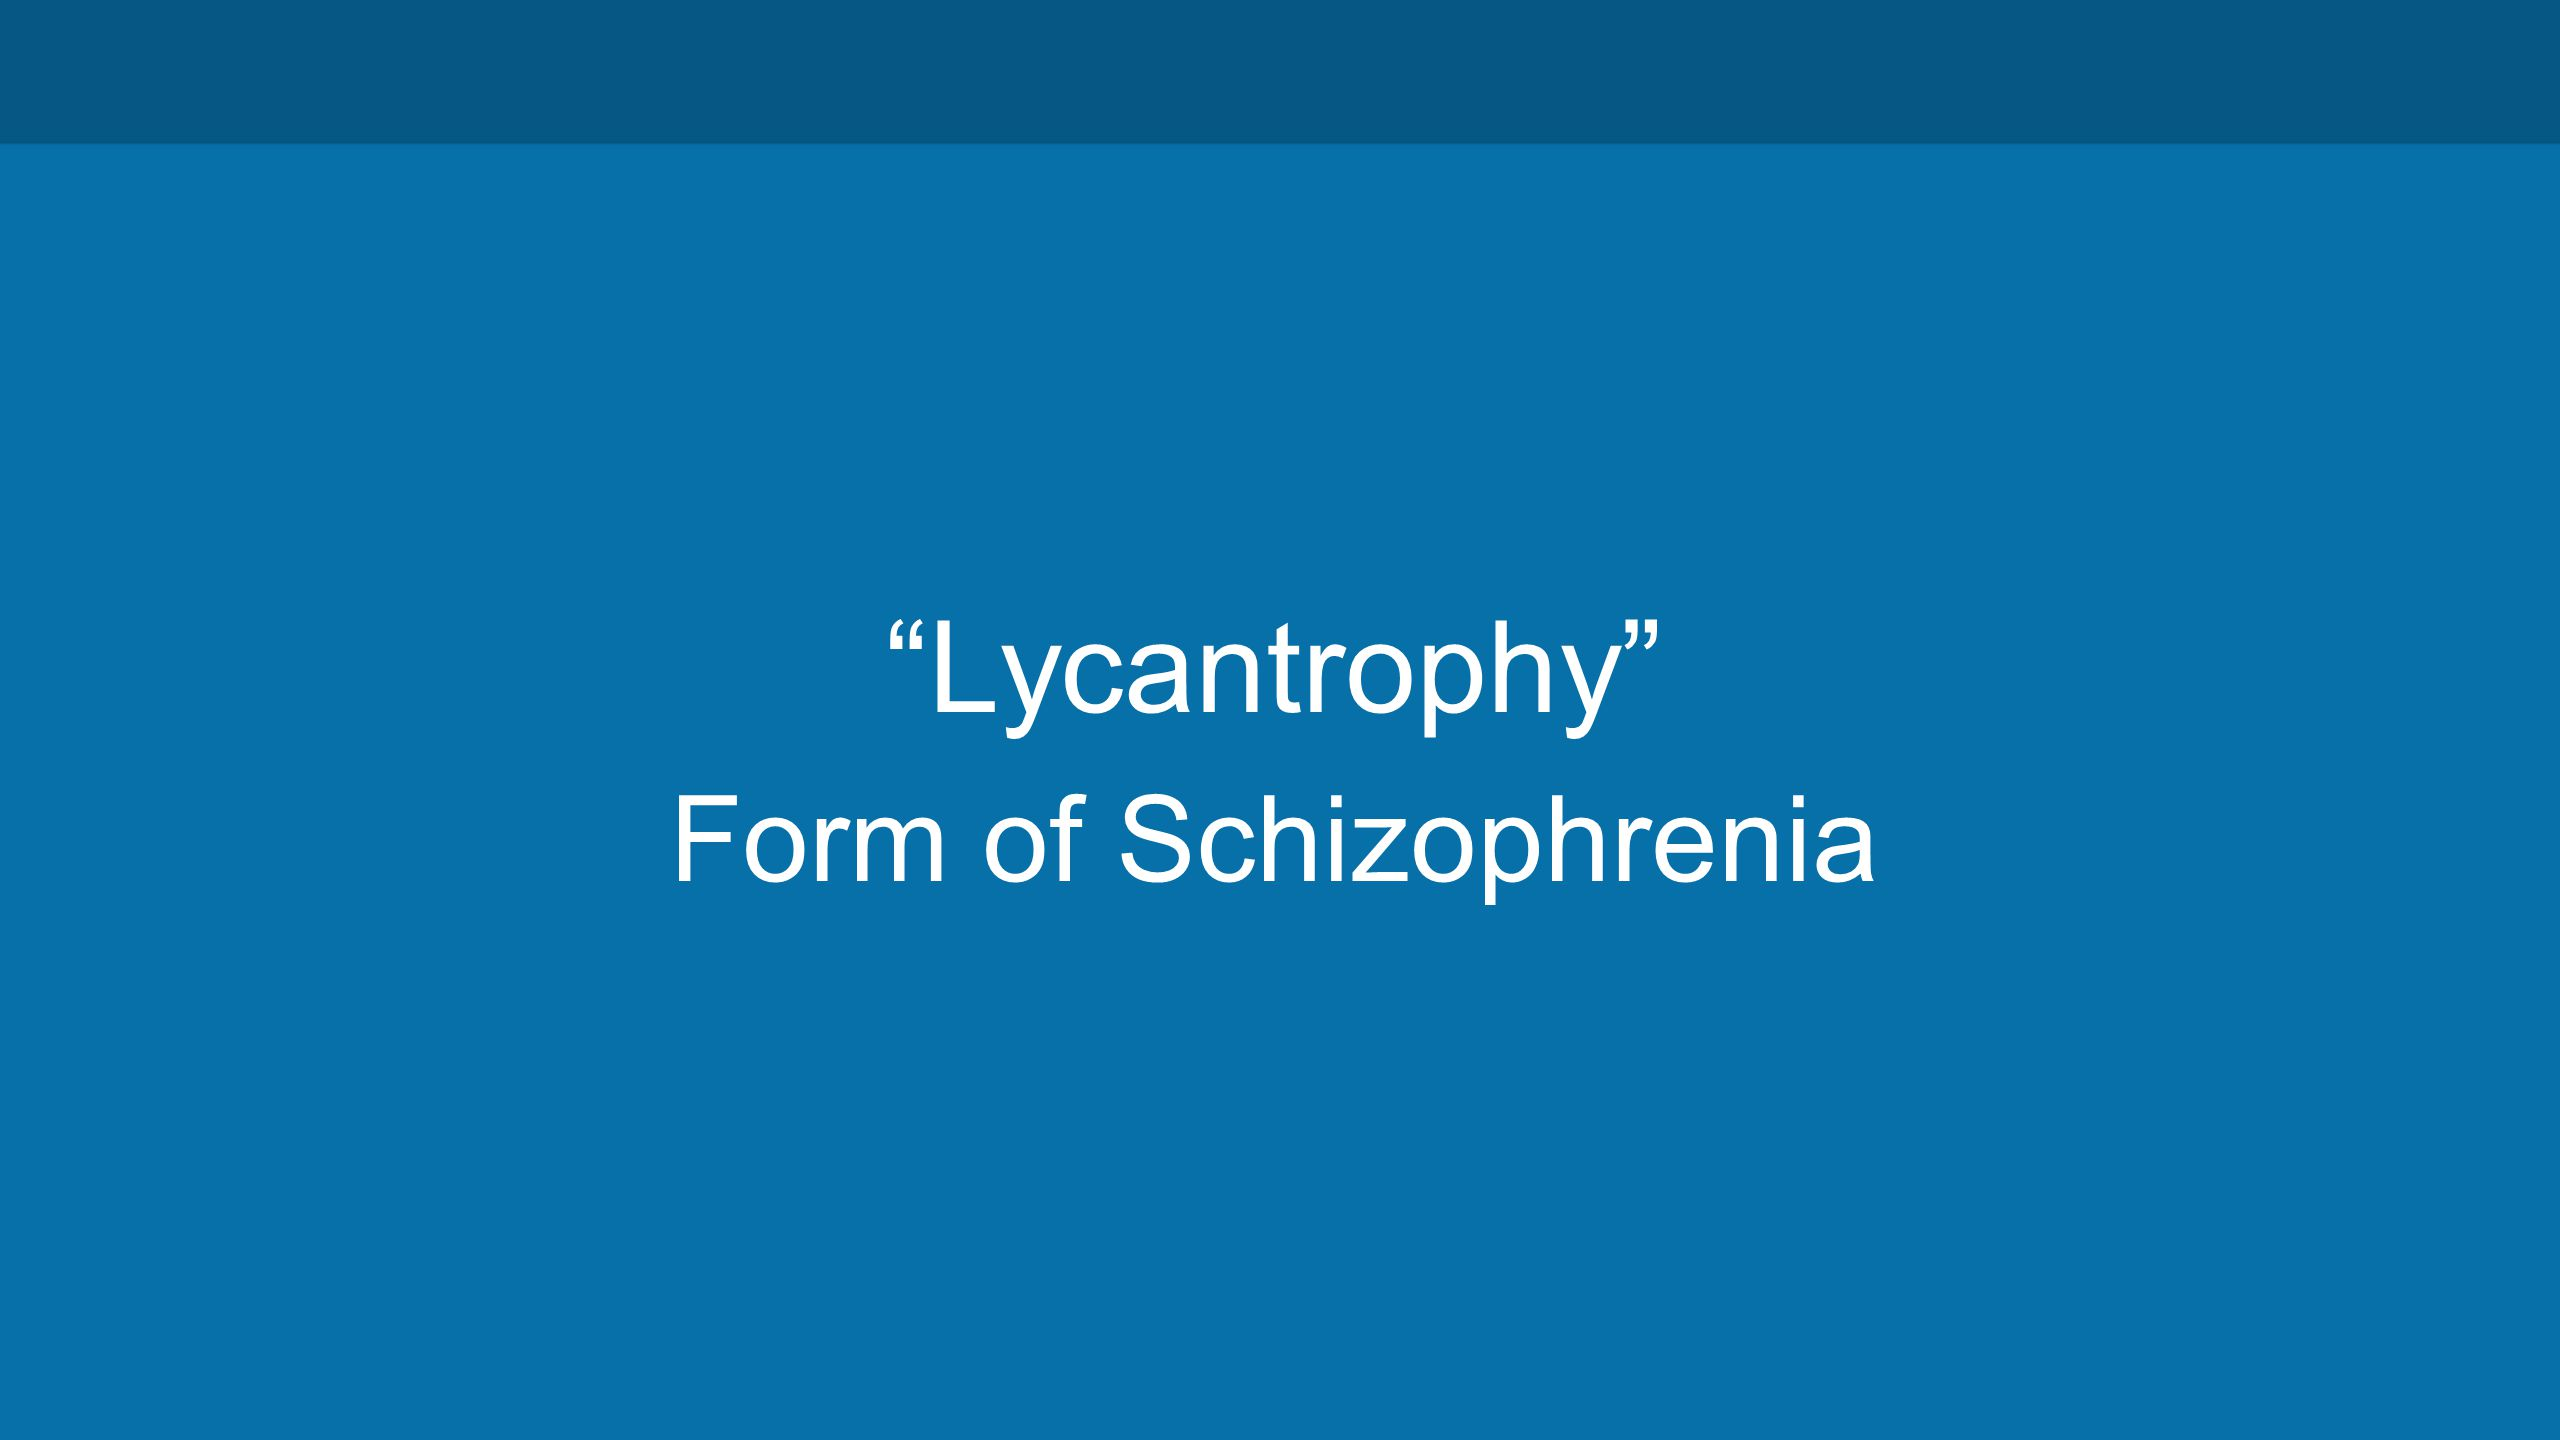 Lycantrophy Form of Schizophrenia